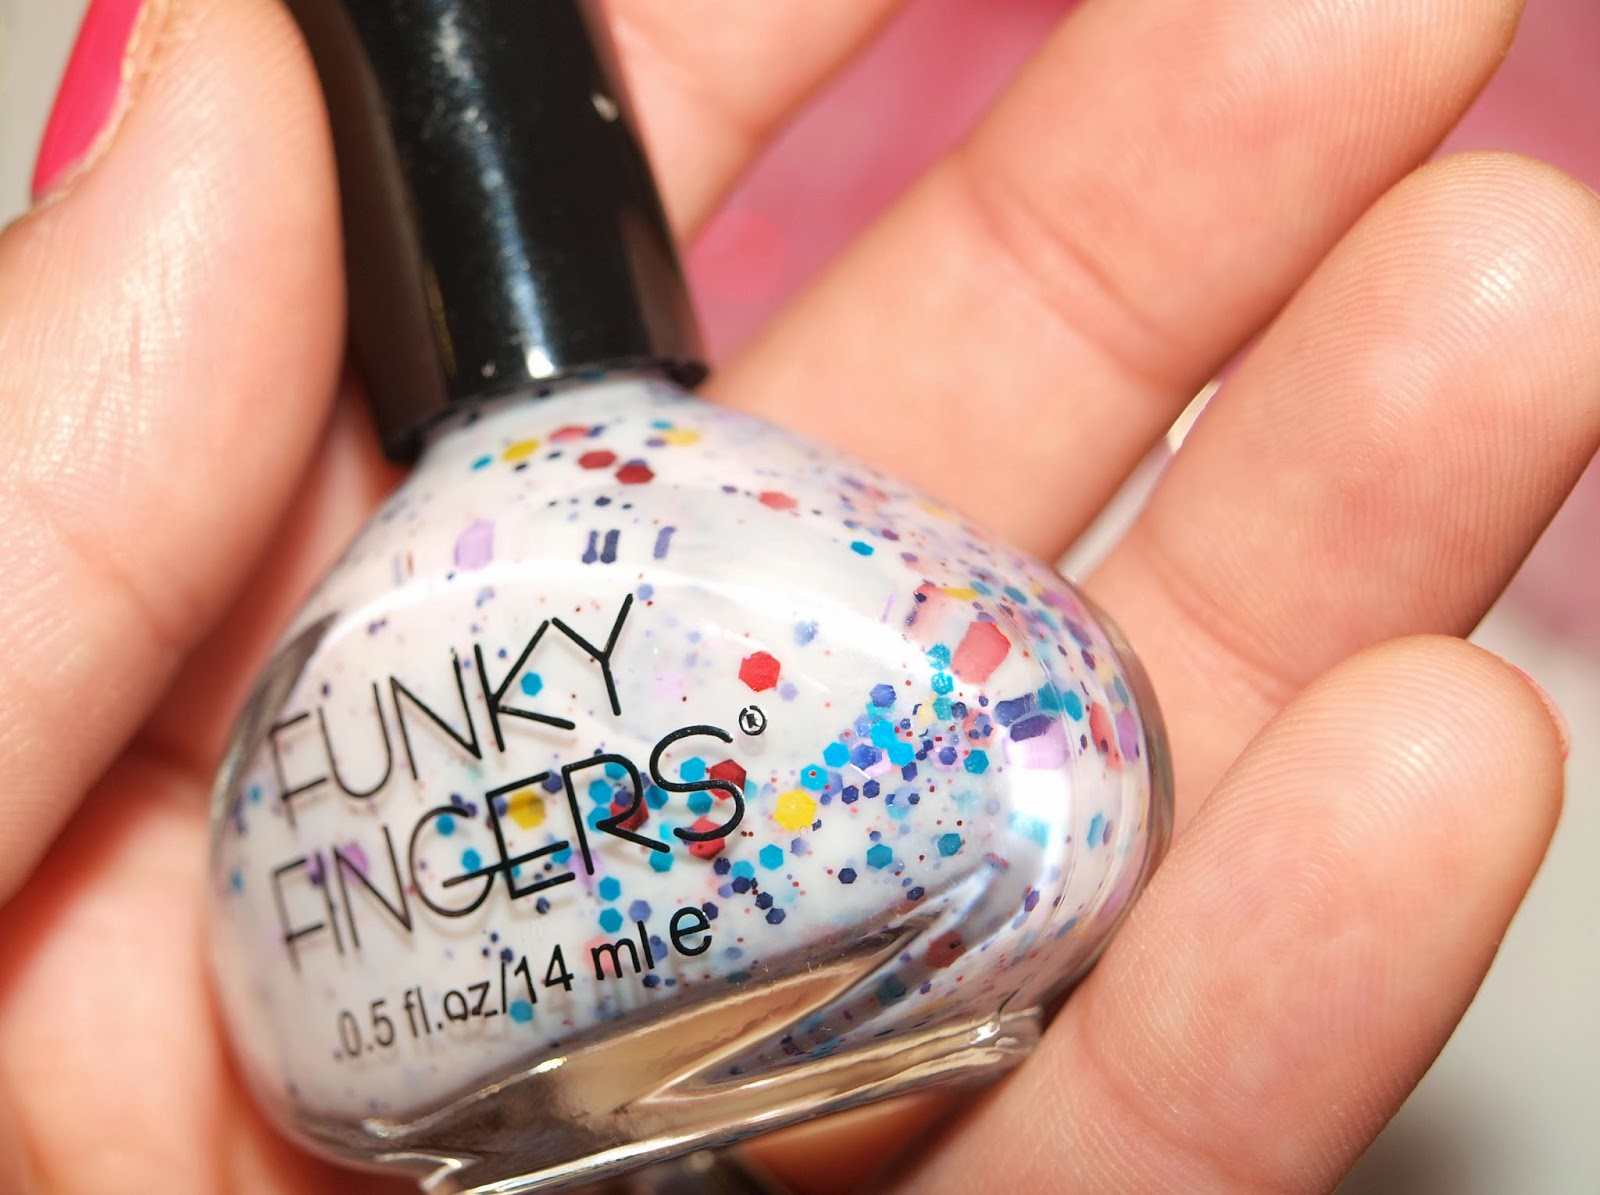 Day 20: Funky Fingers nail polish review - ebay seller